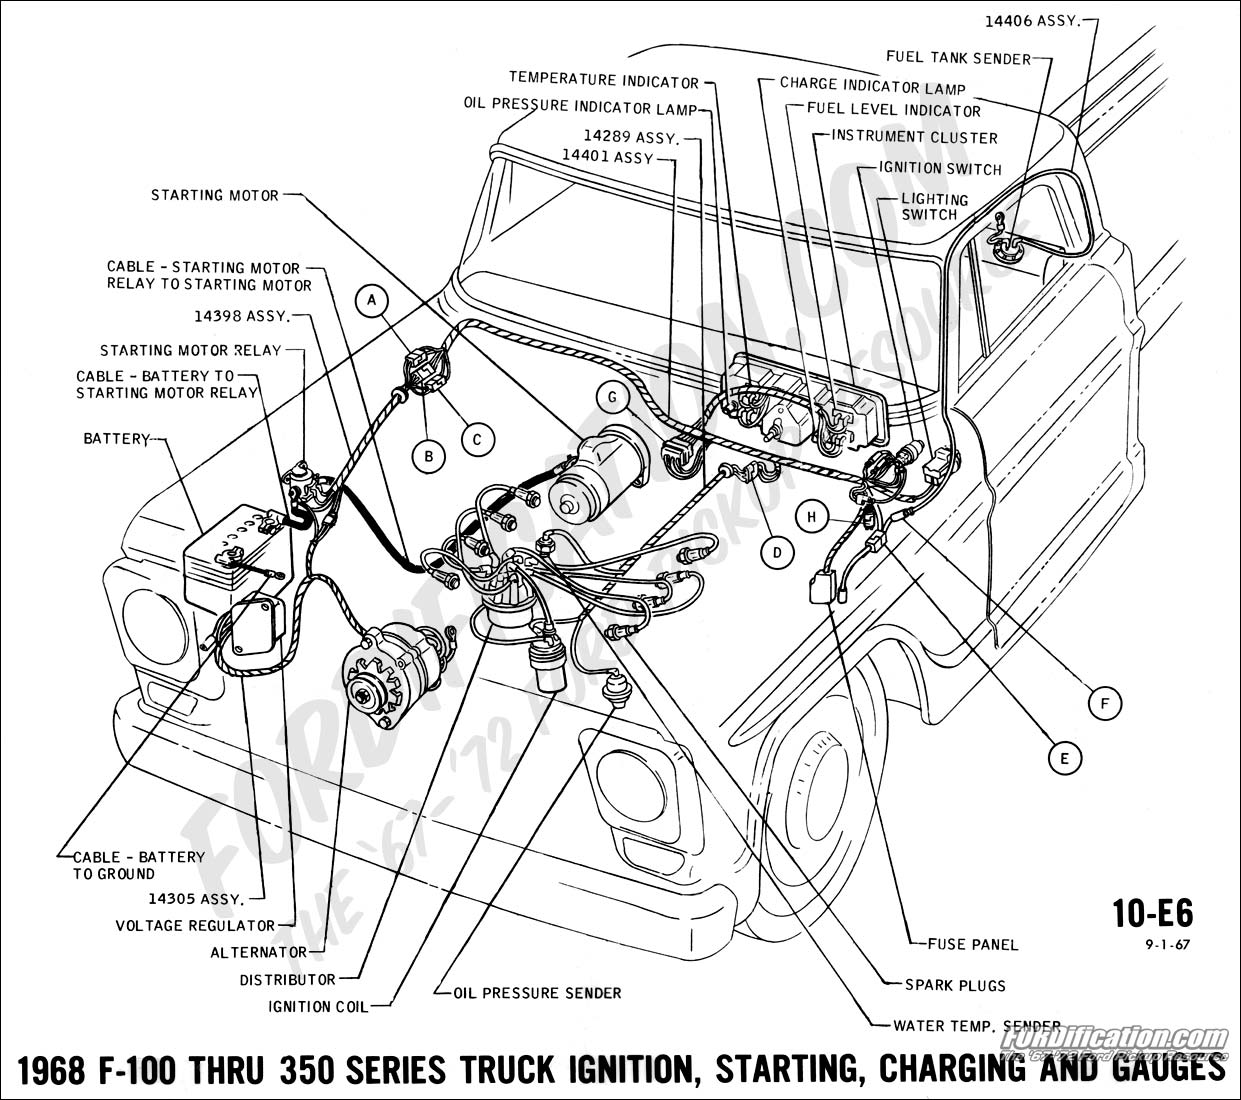 1970 C10 Fuse Wiring Search For Diagrams 1973 Harness Ford Truck Technical Drawings And Schematics Section H 4x4